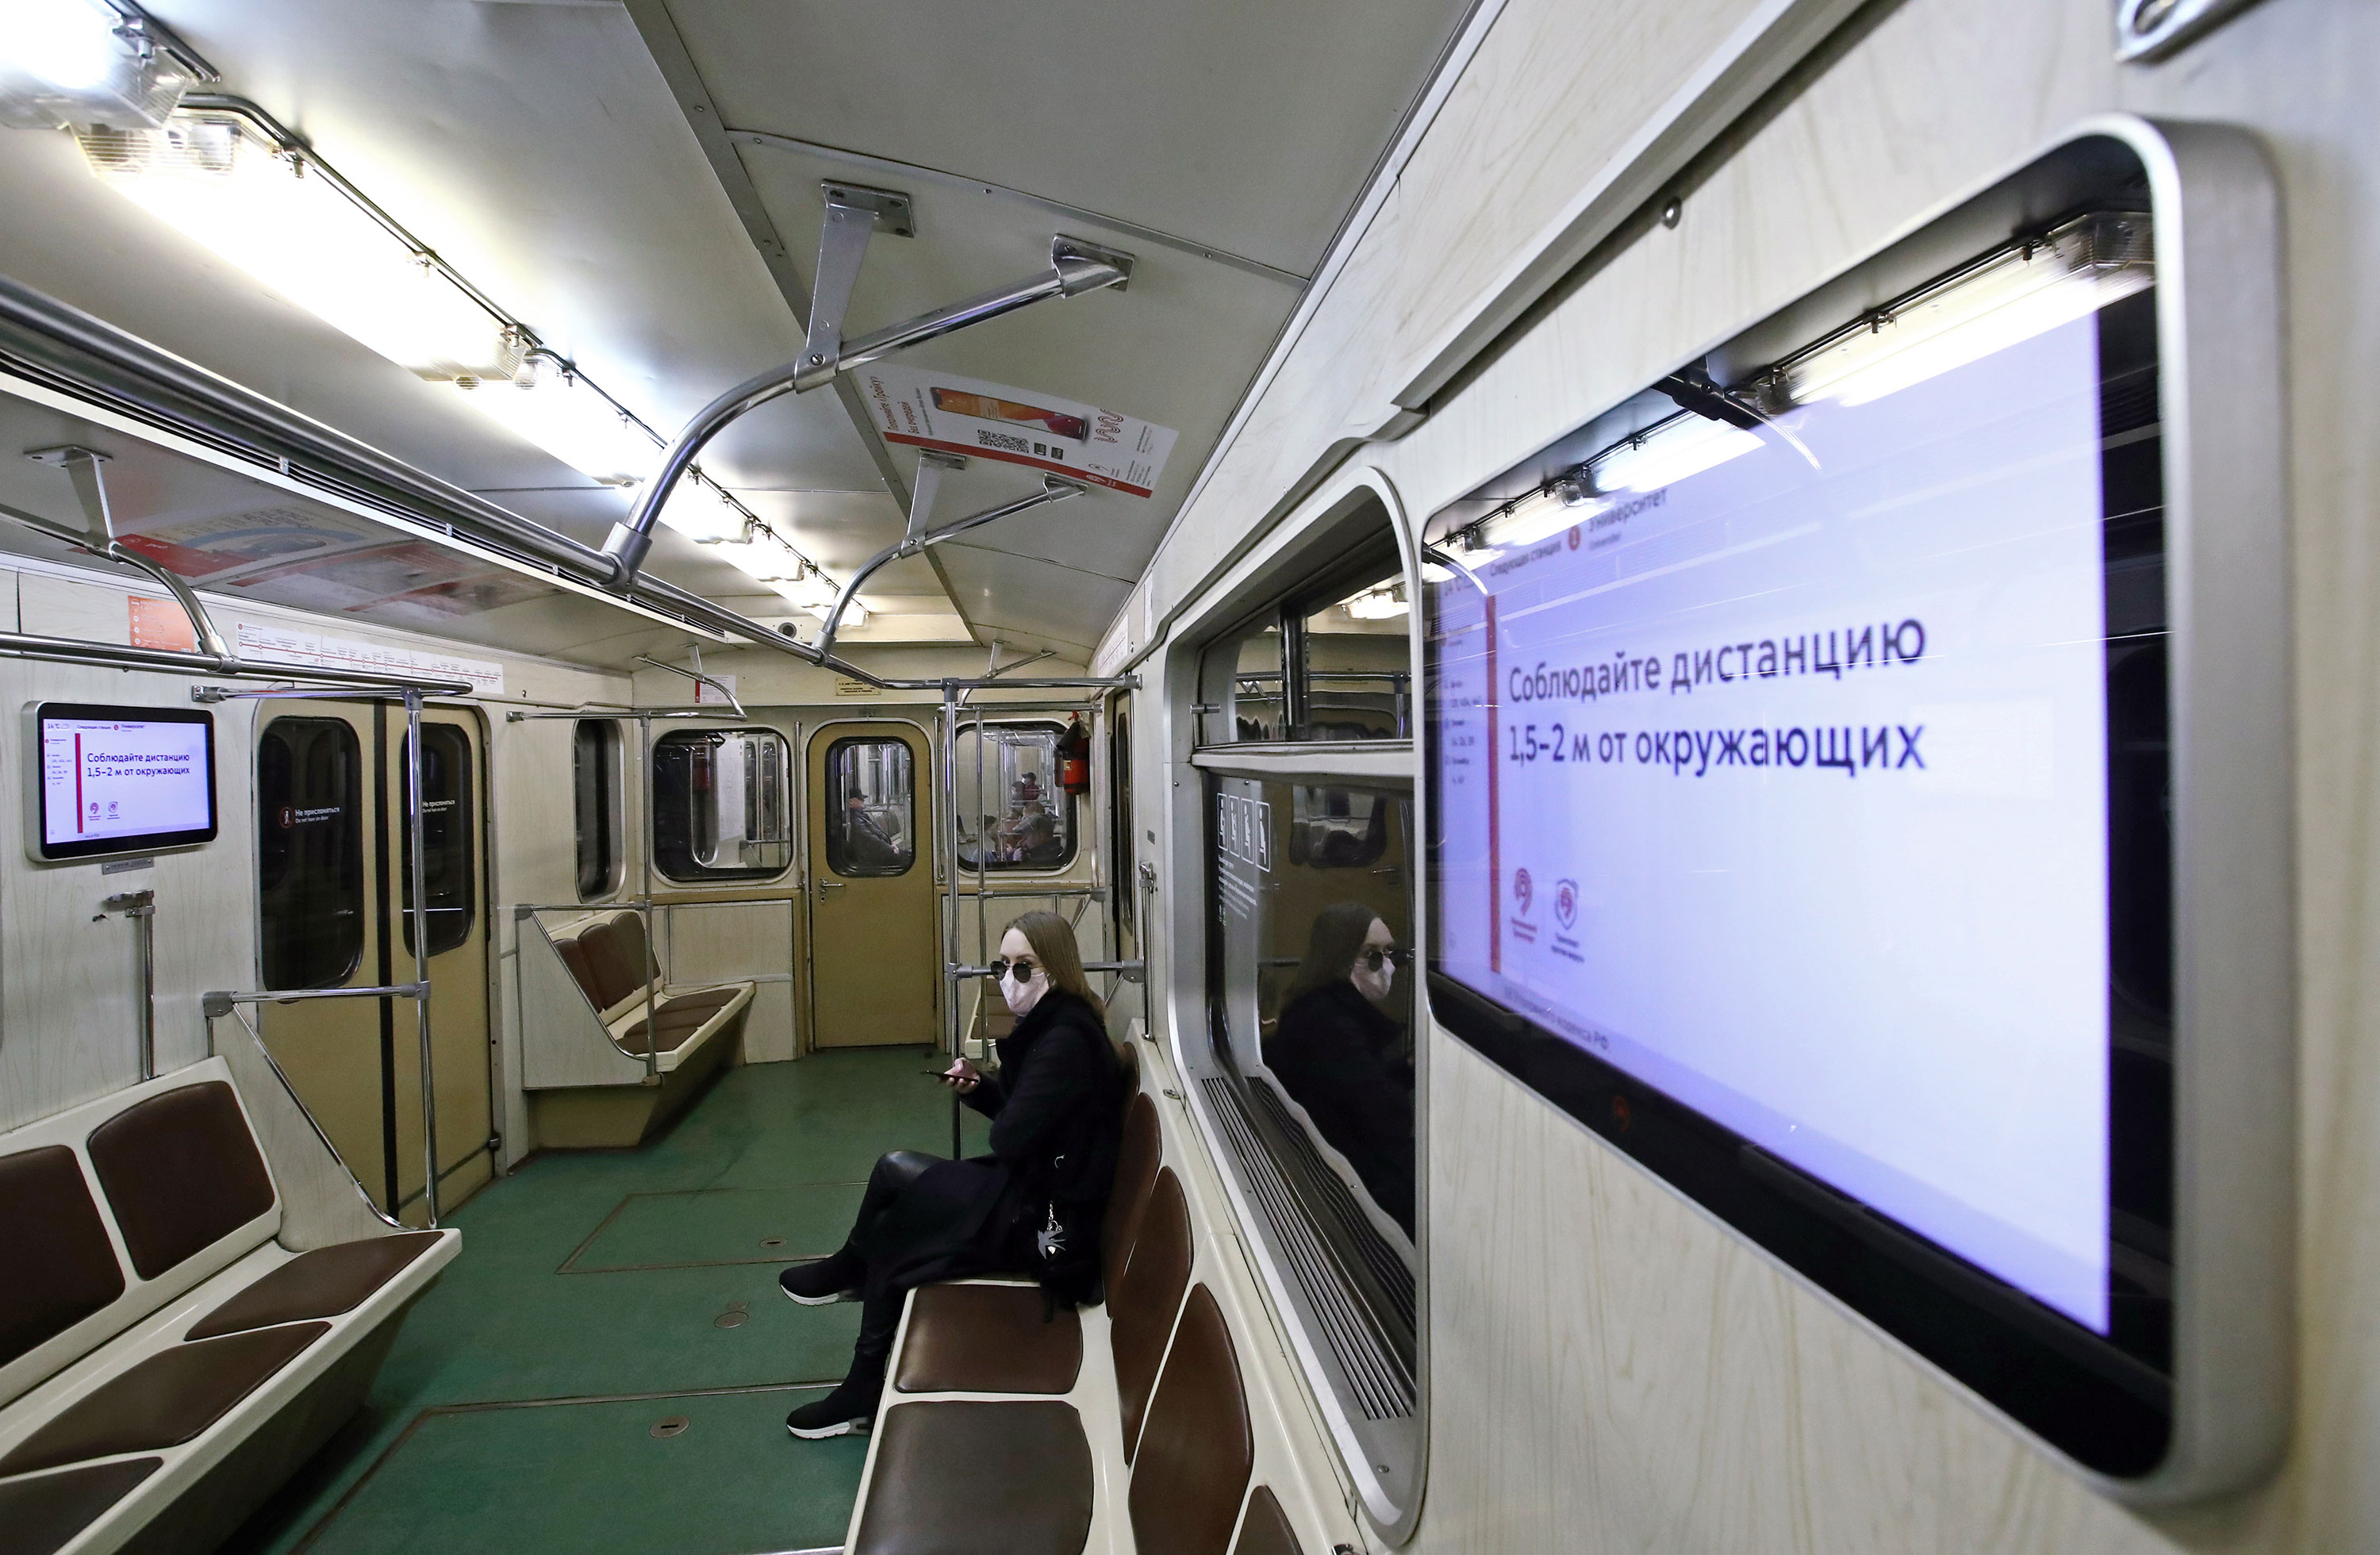 An announcement on a screen urges people to keep 1.5-2m apart in a subway car in Moscow on March 29.